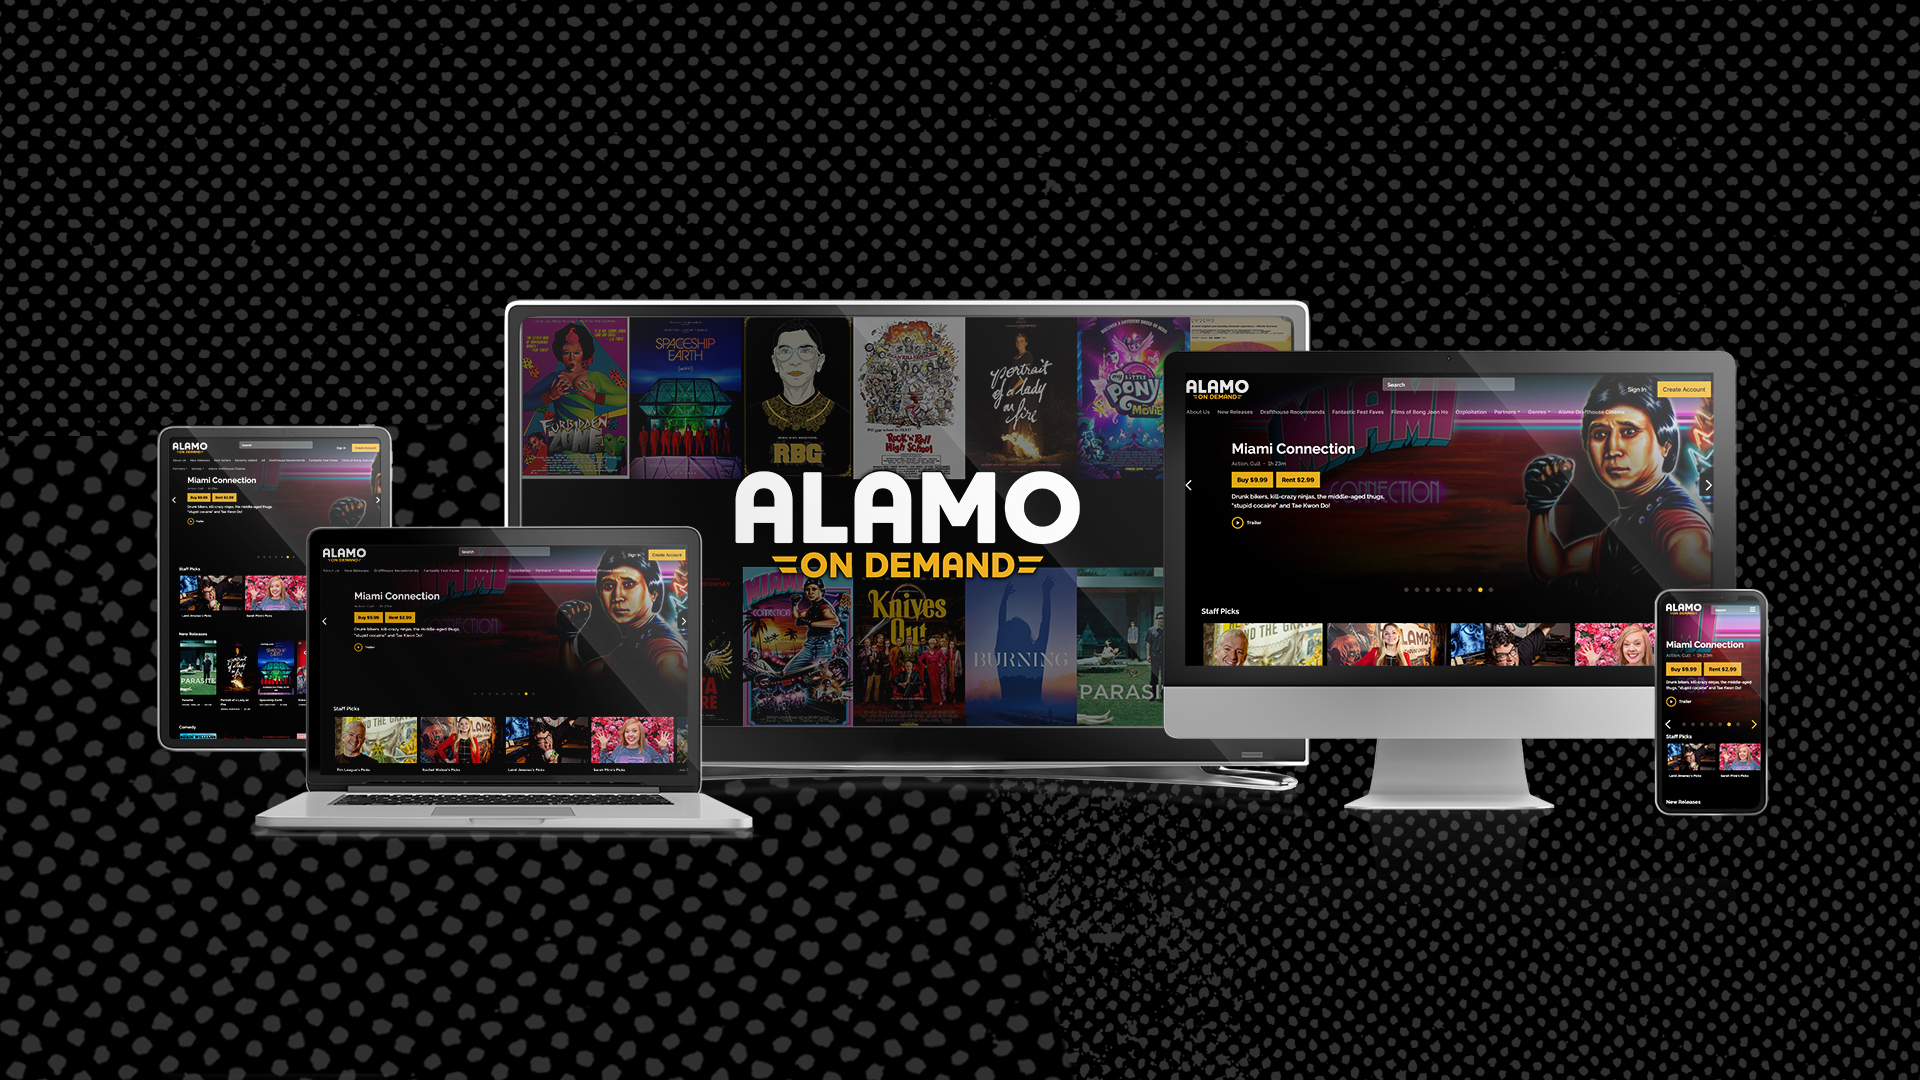 Alamo Drafthouse now has its own curated VOD platform, Alamo On Demand